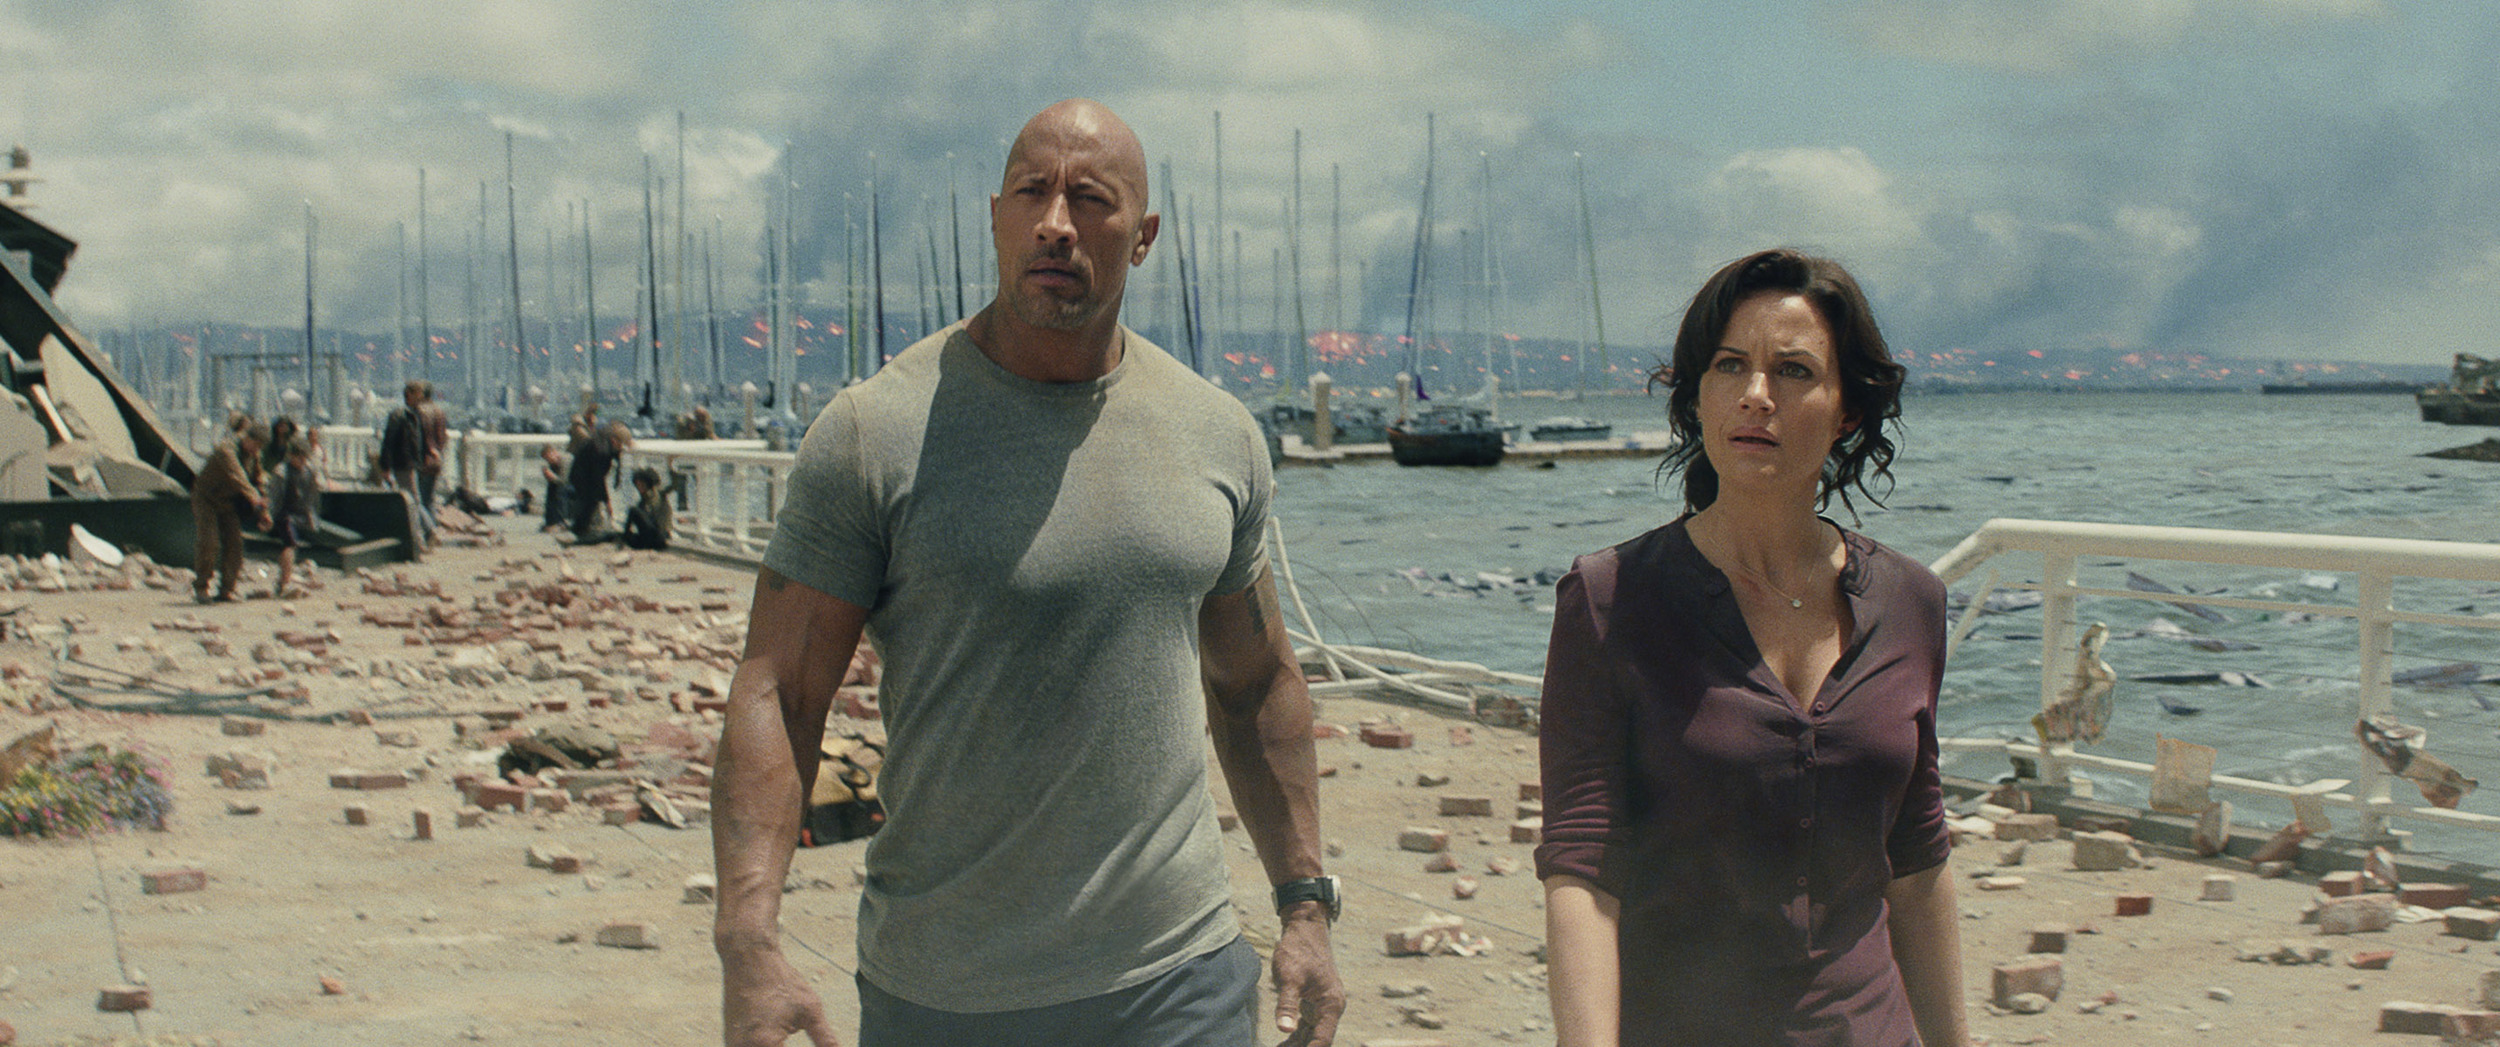 The Rock and Carla Gugino do a decent job of reacting to things that aren't there. (Warner Bros. Pictures)